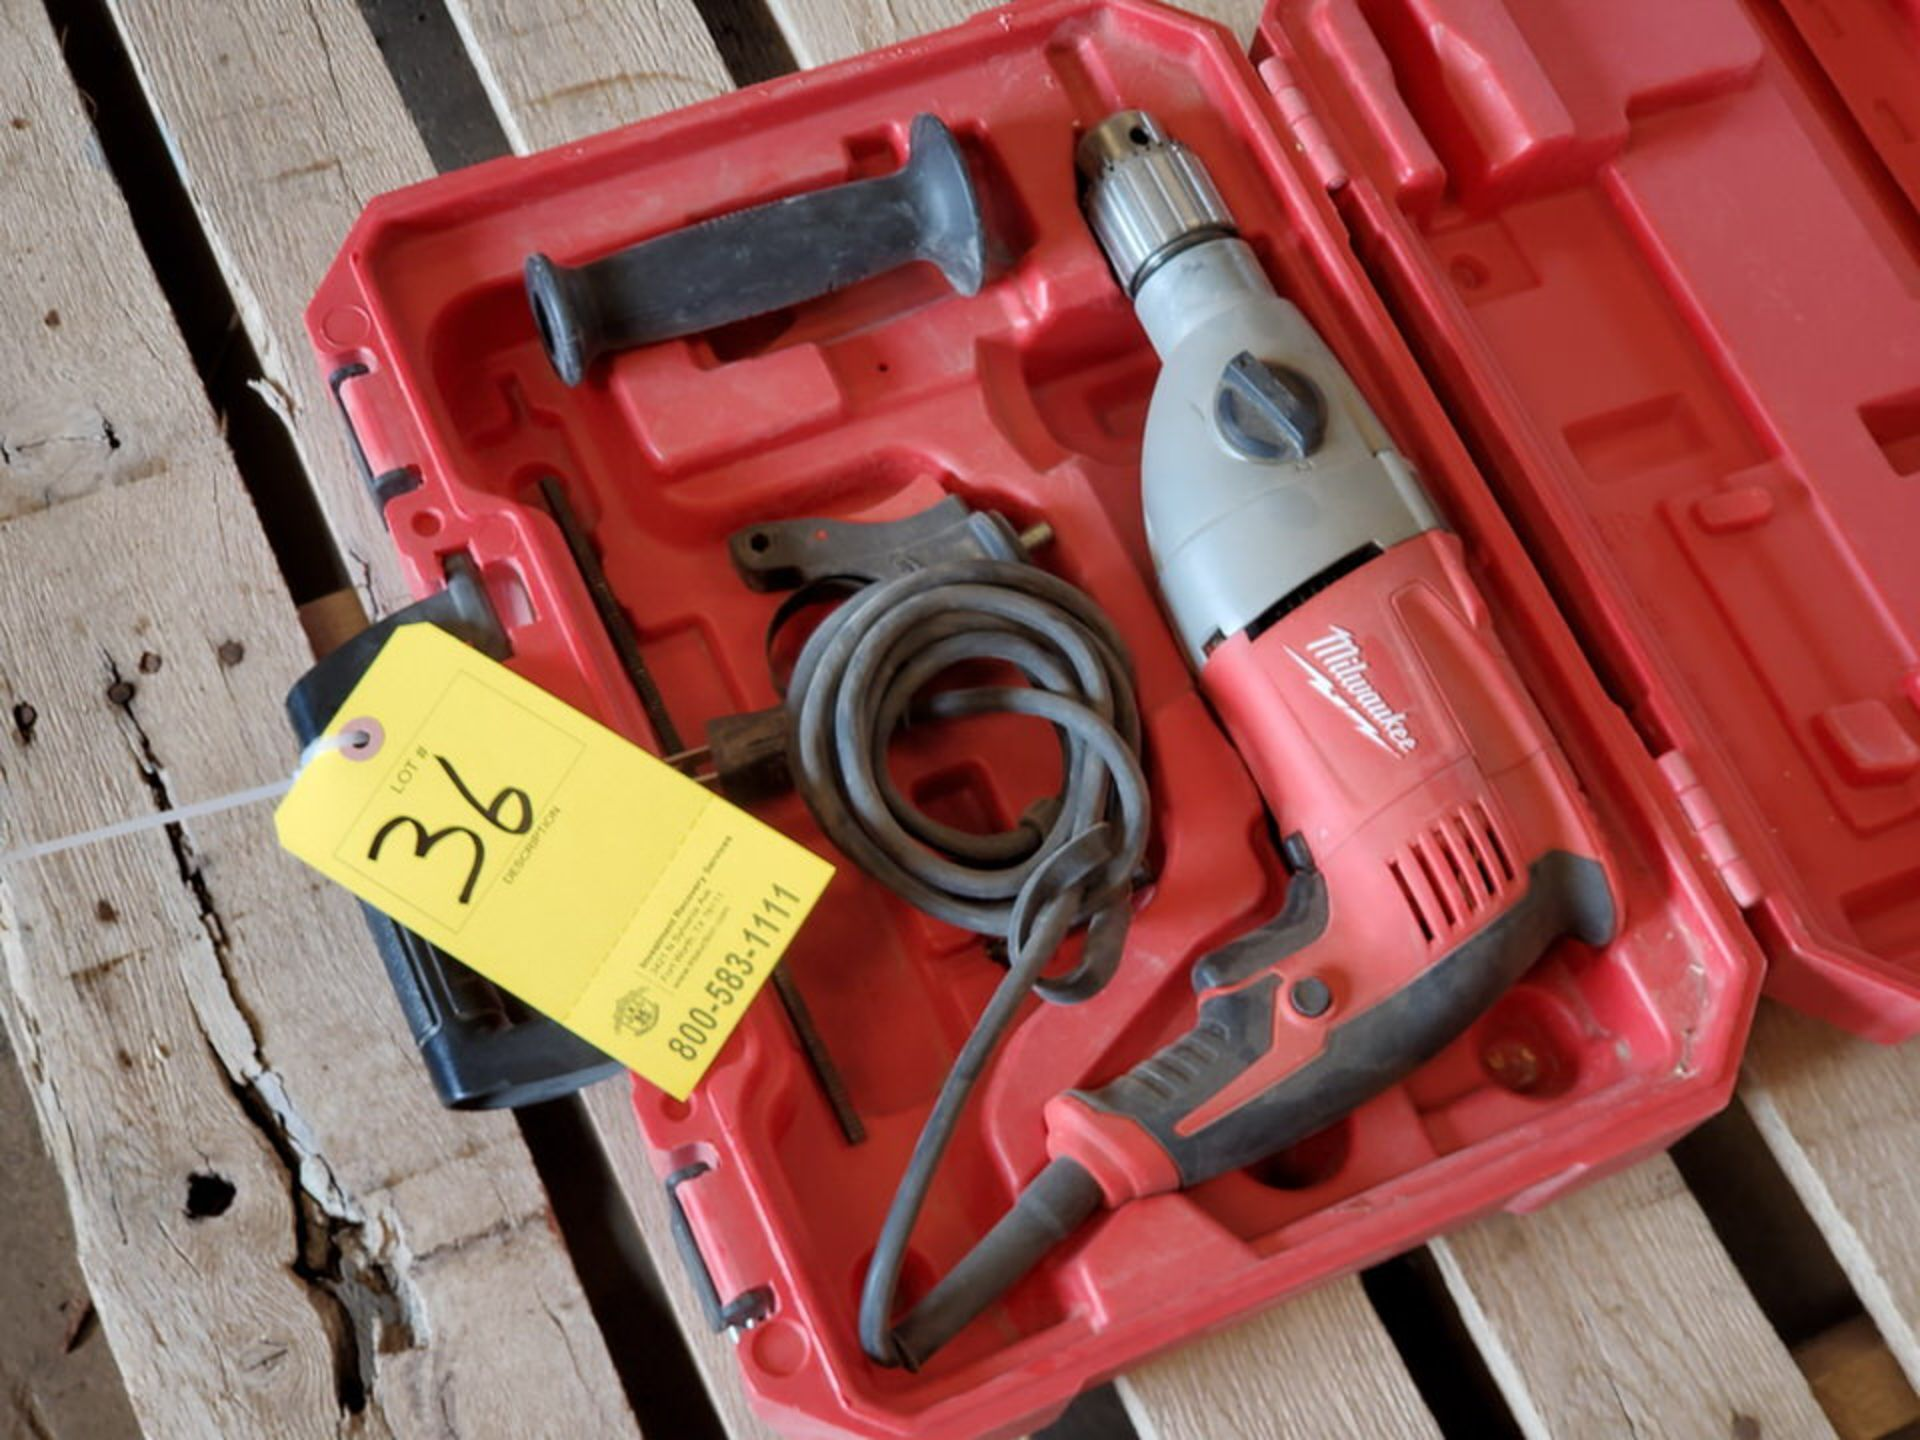 """Milwaukee 1/2"""" Hammer Drill 120V, 7.5A - Image 2 of 3"""